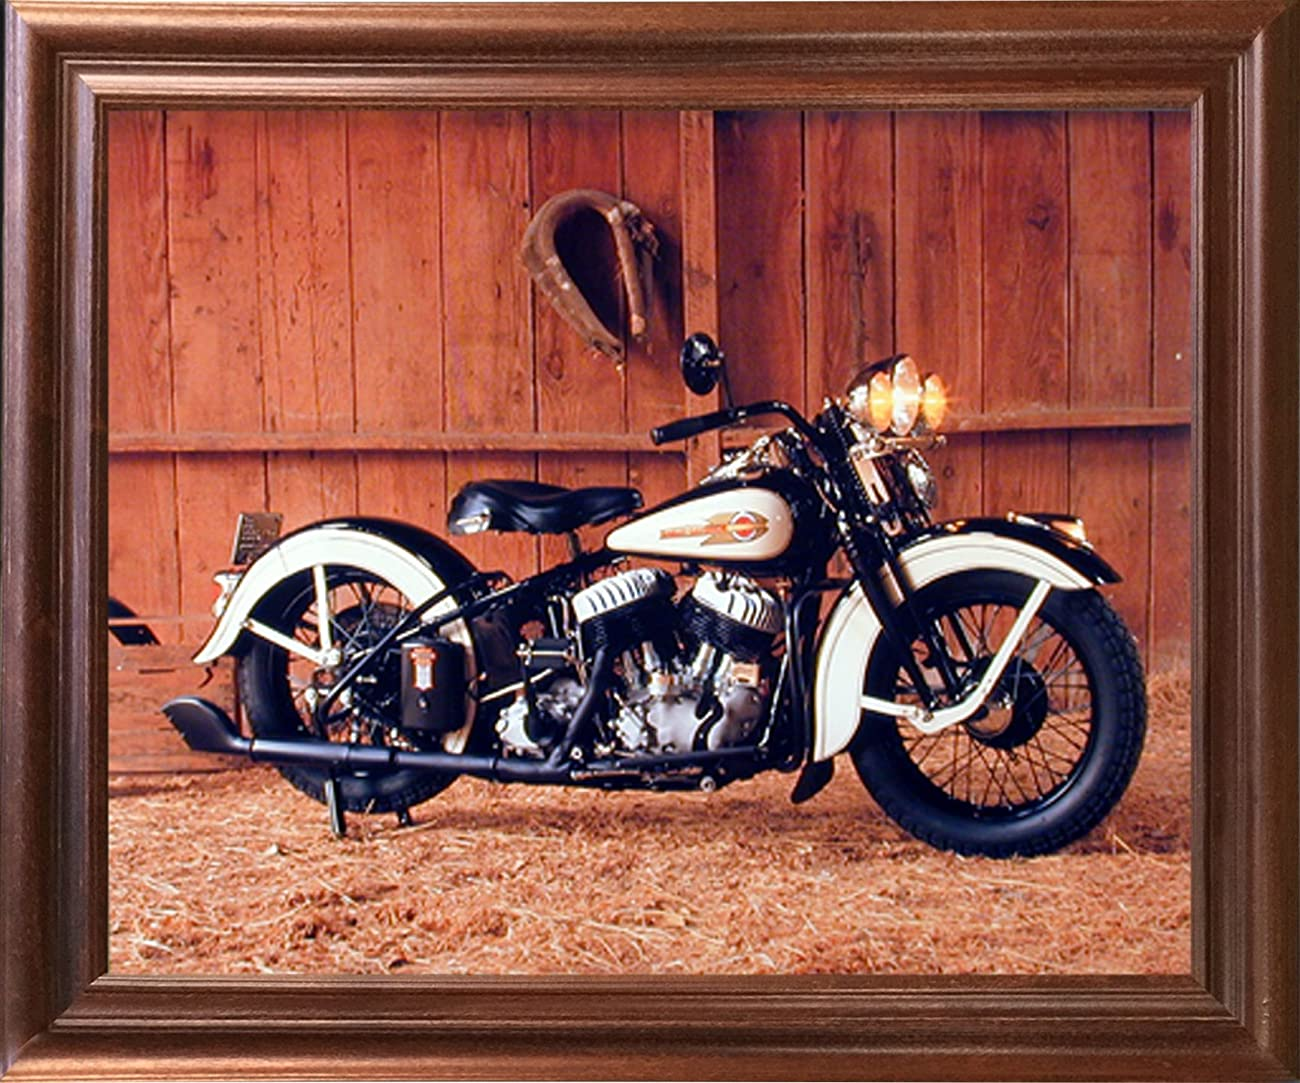 Vintage Flathead Harley Davidson Motorcycle Wall Decor Mahogany Framed Picture Art Print (18x22) 0